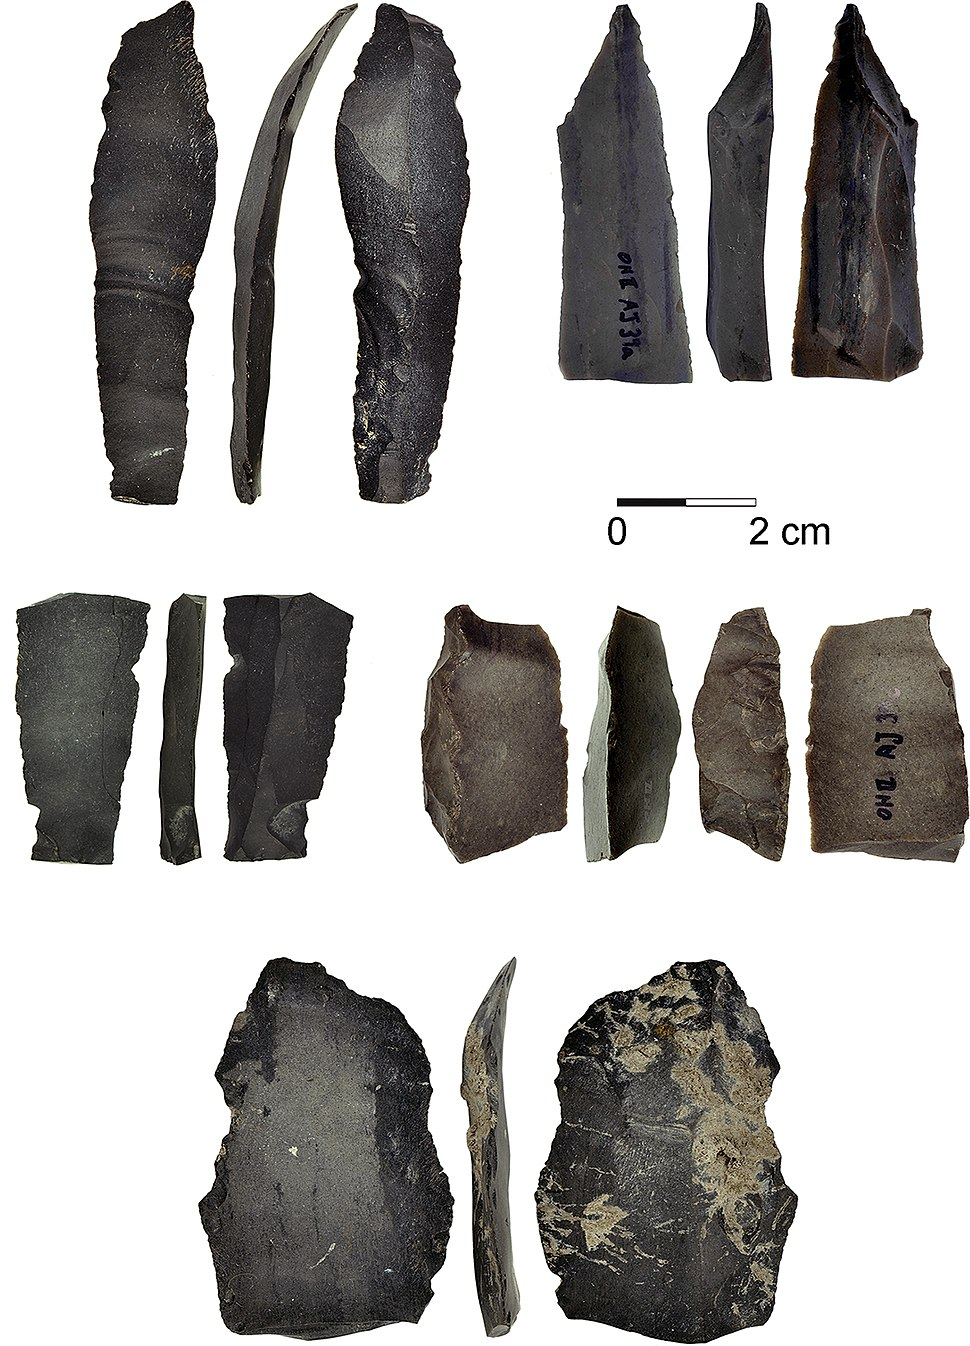 Composite Sickles for Cereal Harvesting at 23,000-Years-Old Ohalo II, Israel